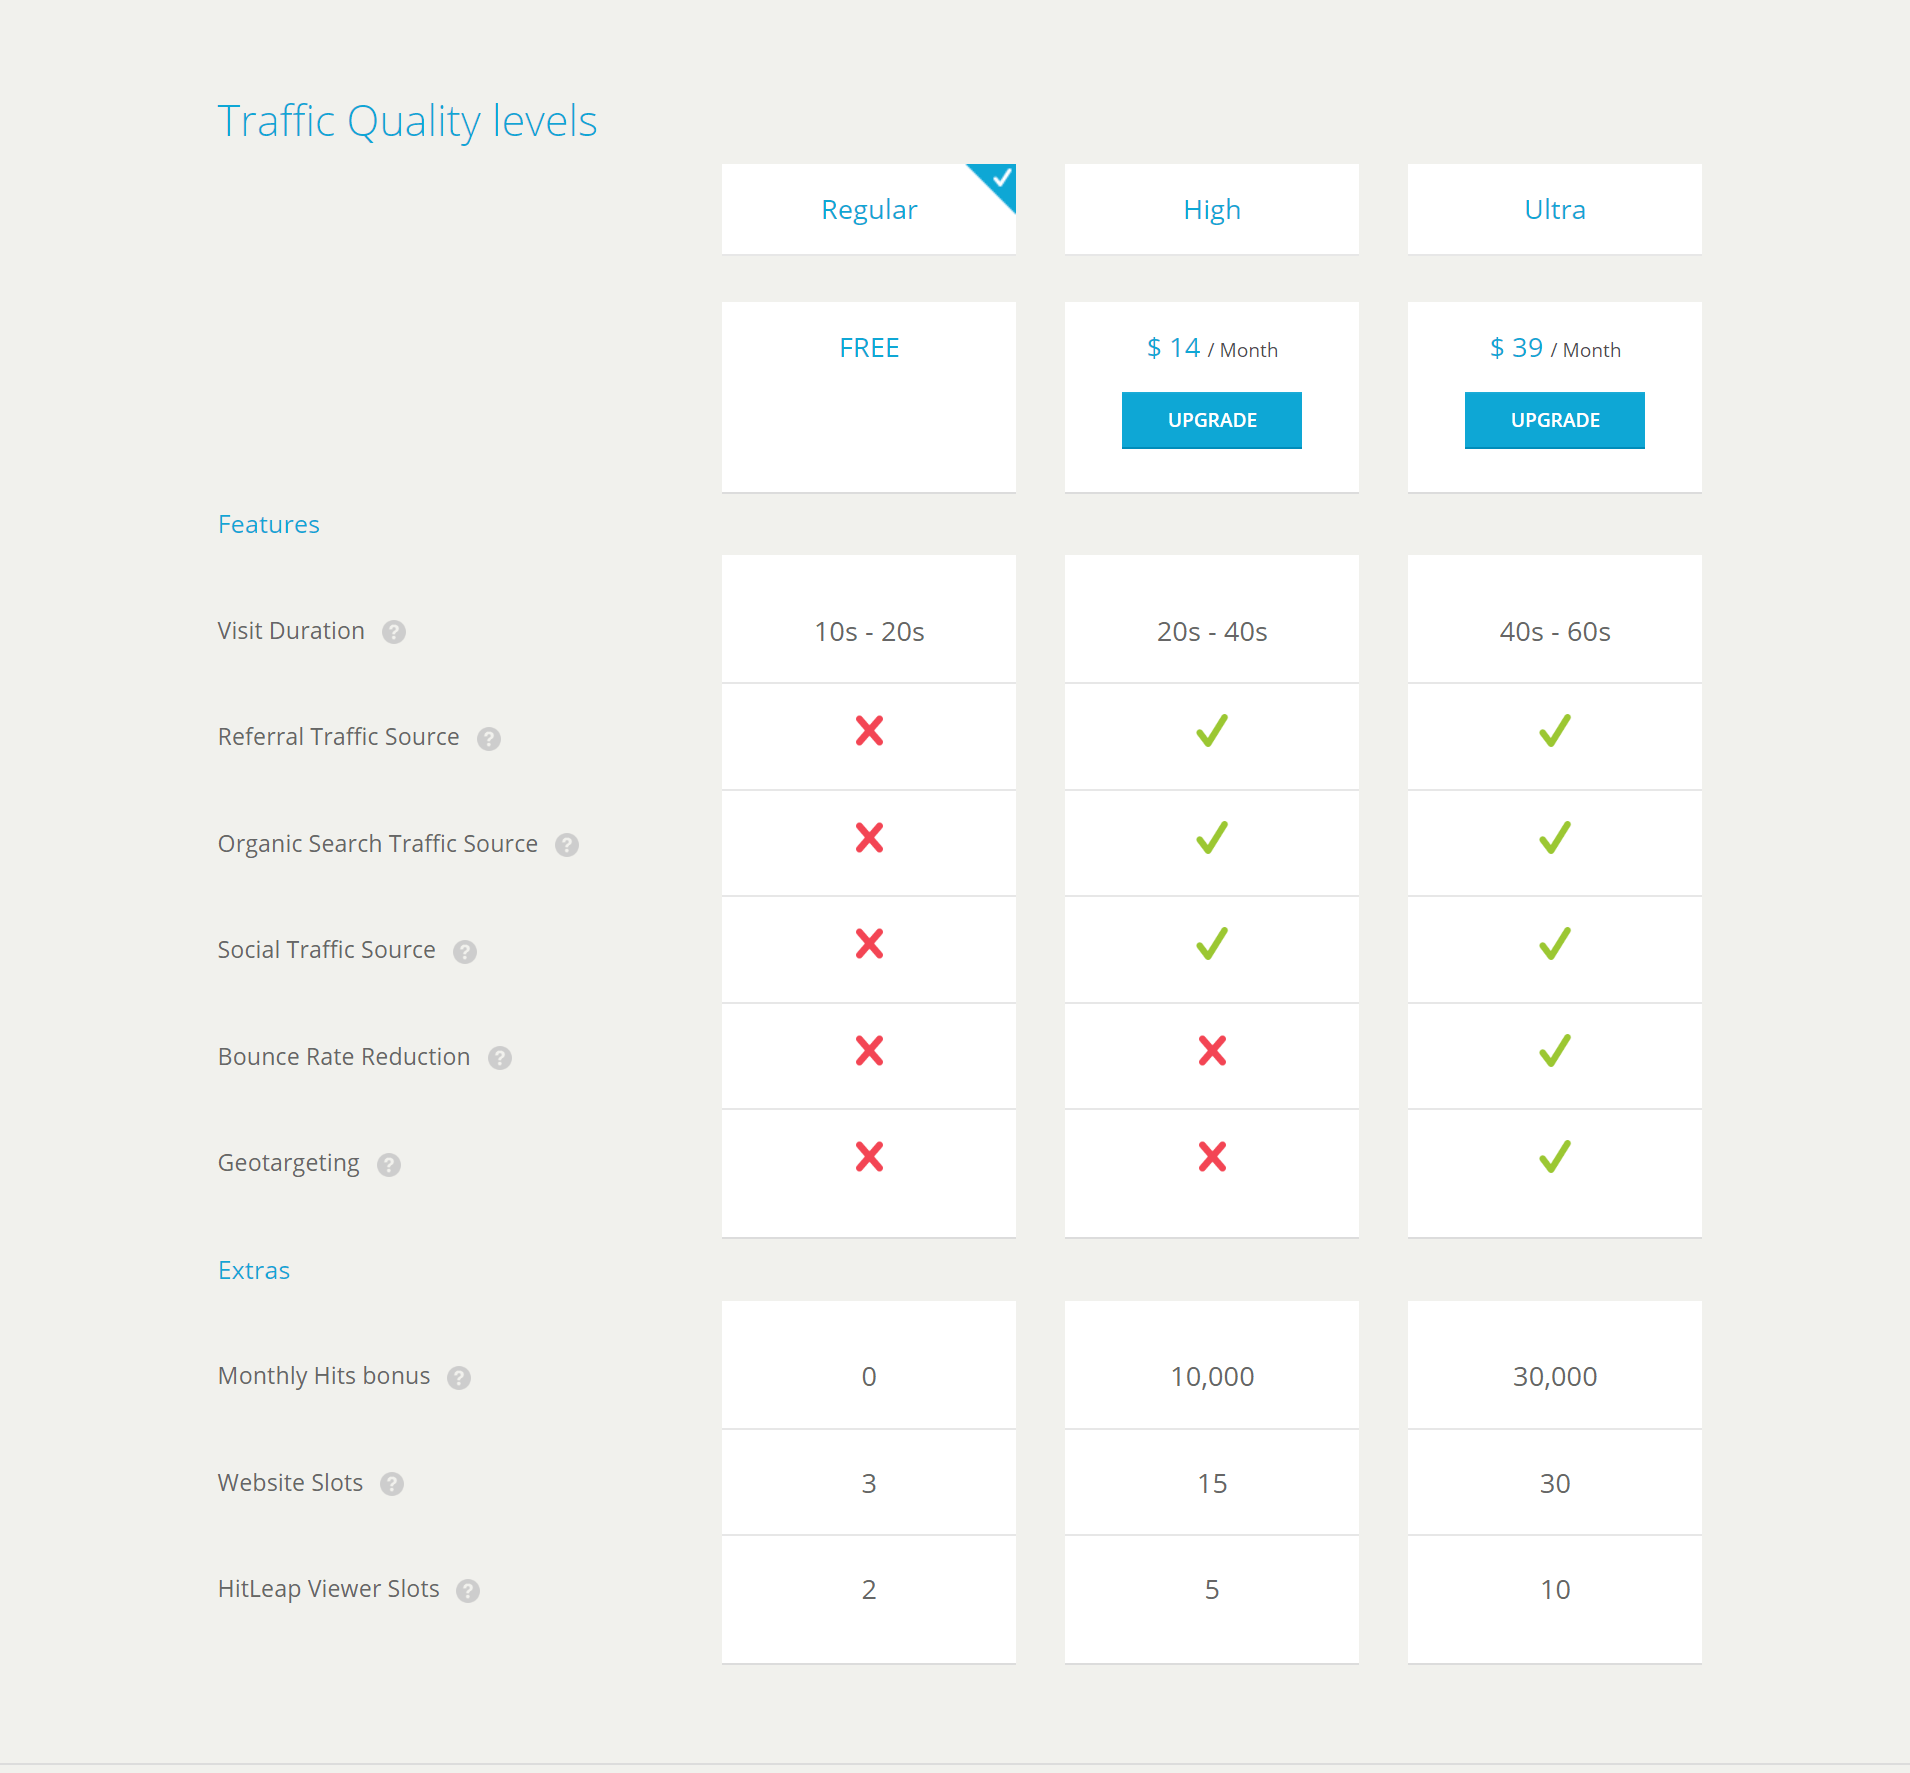 Traffic Quality levels - HitLeap